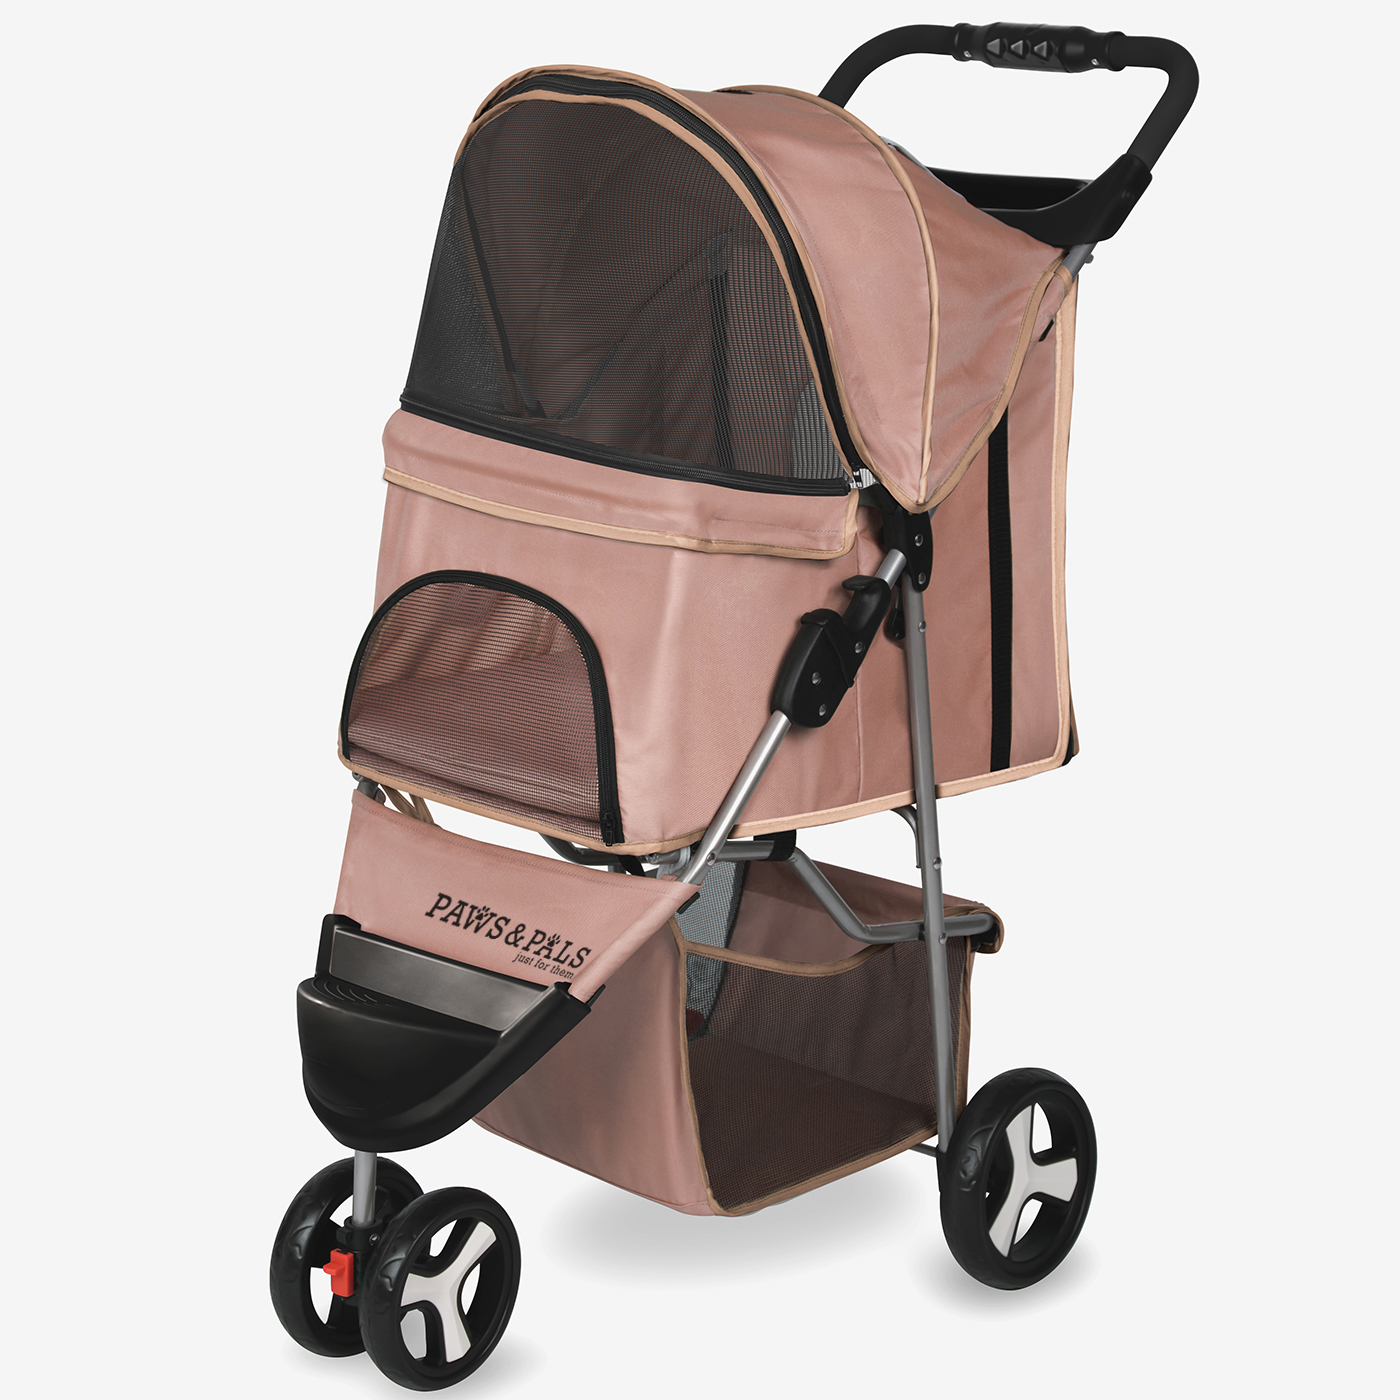 Paws & Pals Pet Stroller 3 Wheel,Portable Jogger Best for Dog and Cat